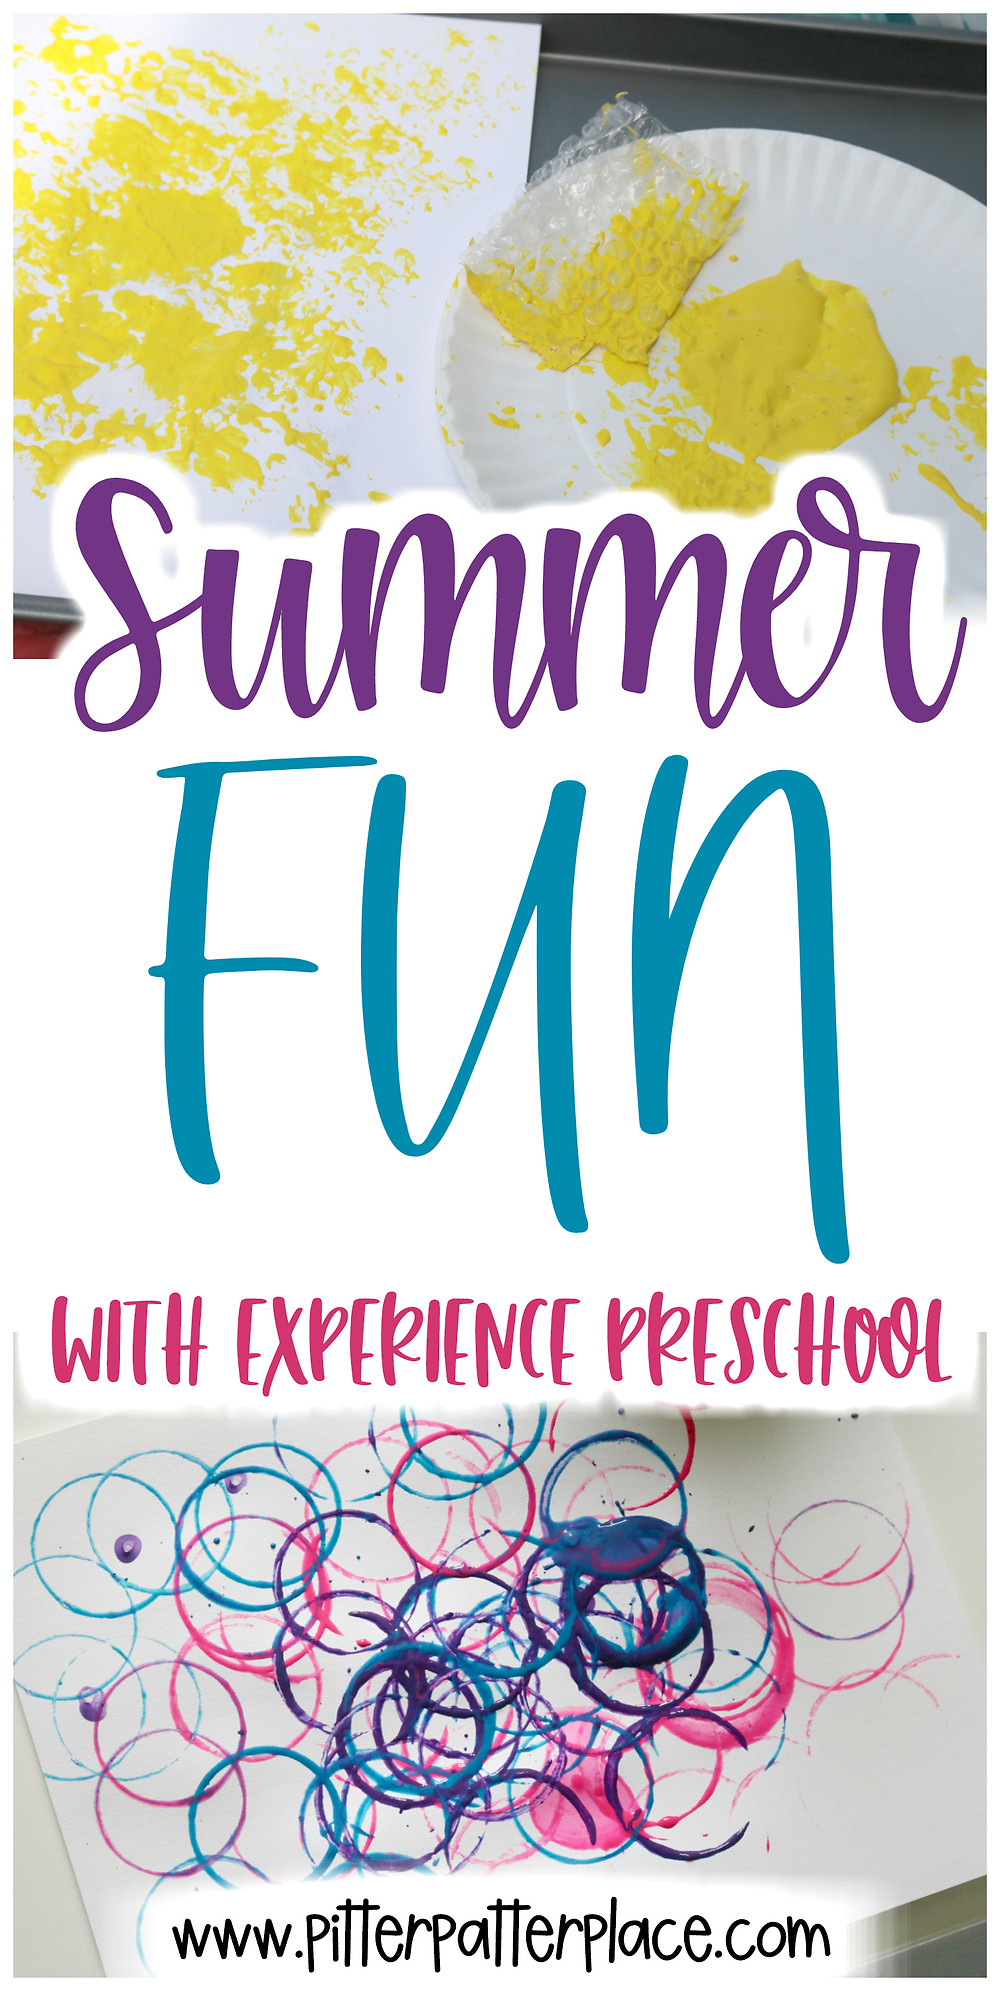 bug activities collage with text overlay: Summer Fun with Experience Preschool